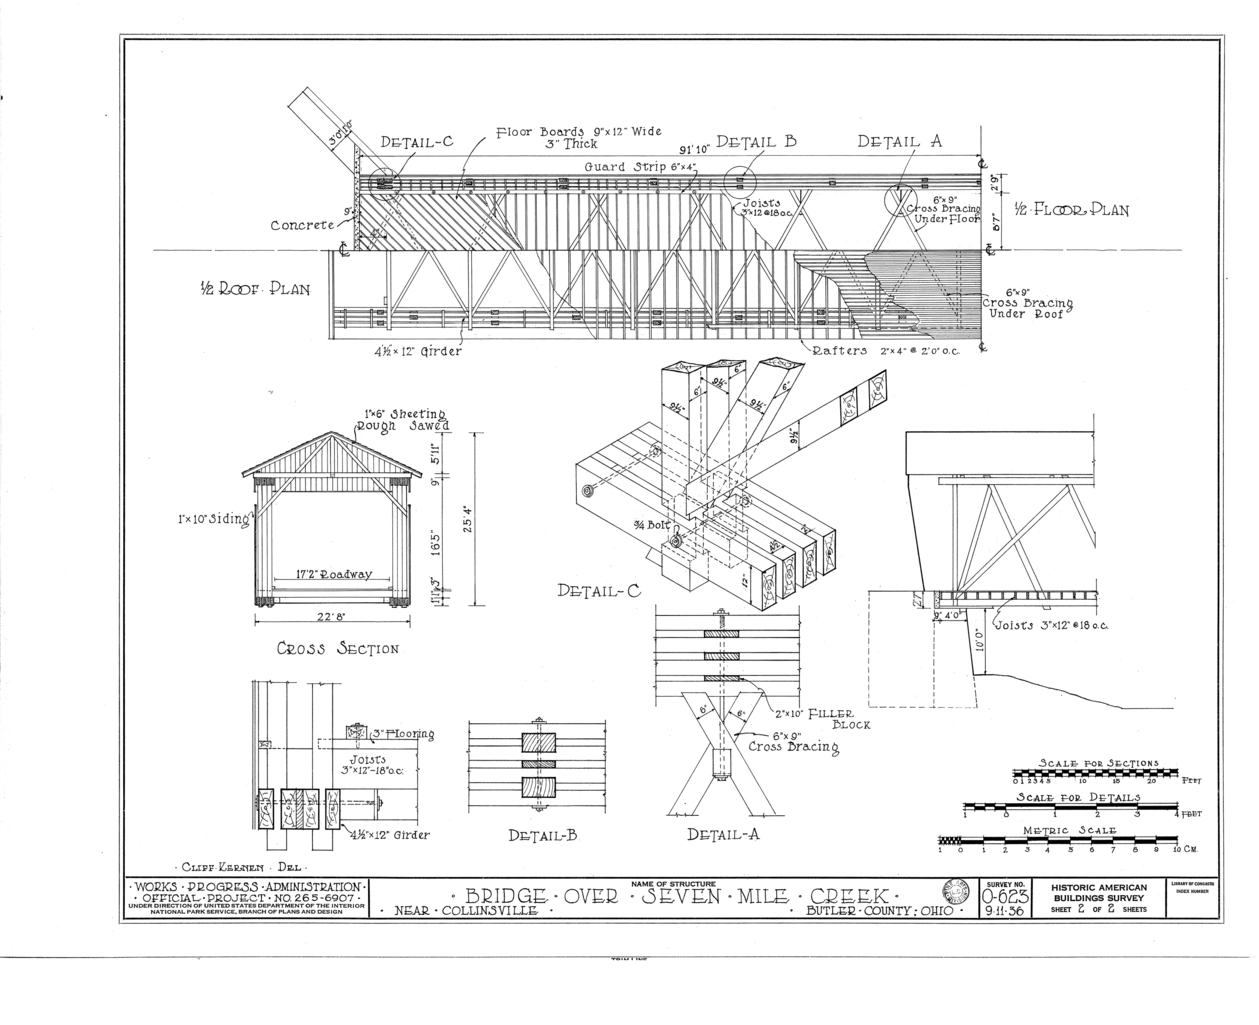 File 1 2 roof plan 1 2 floor plan cross section details for Mountain bridge floor plans